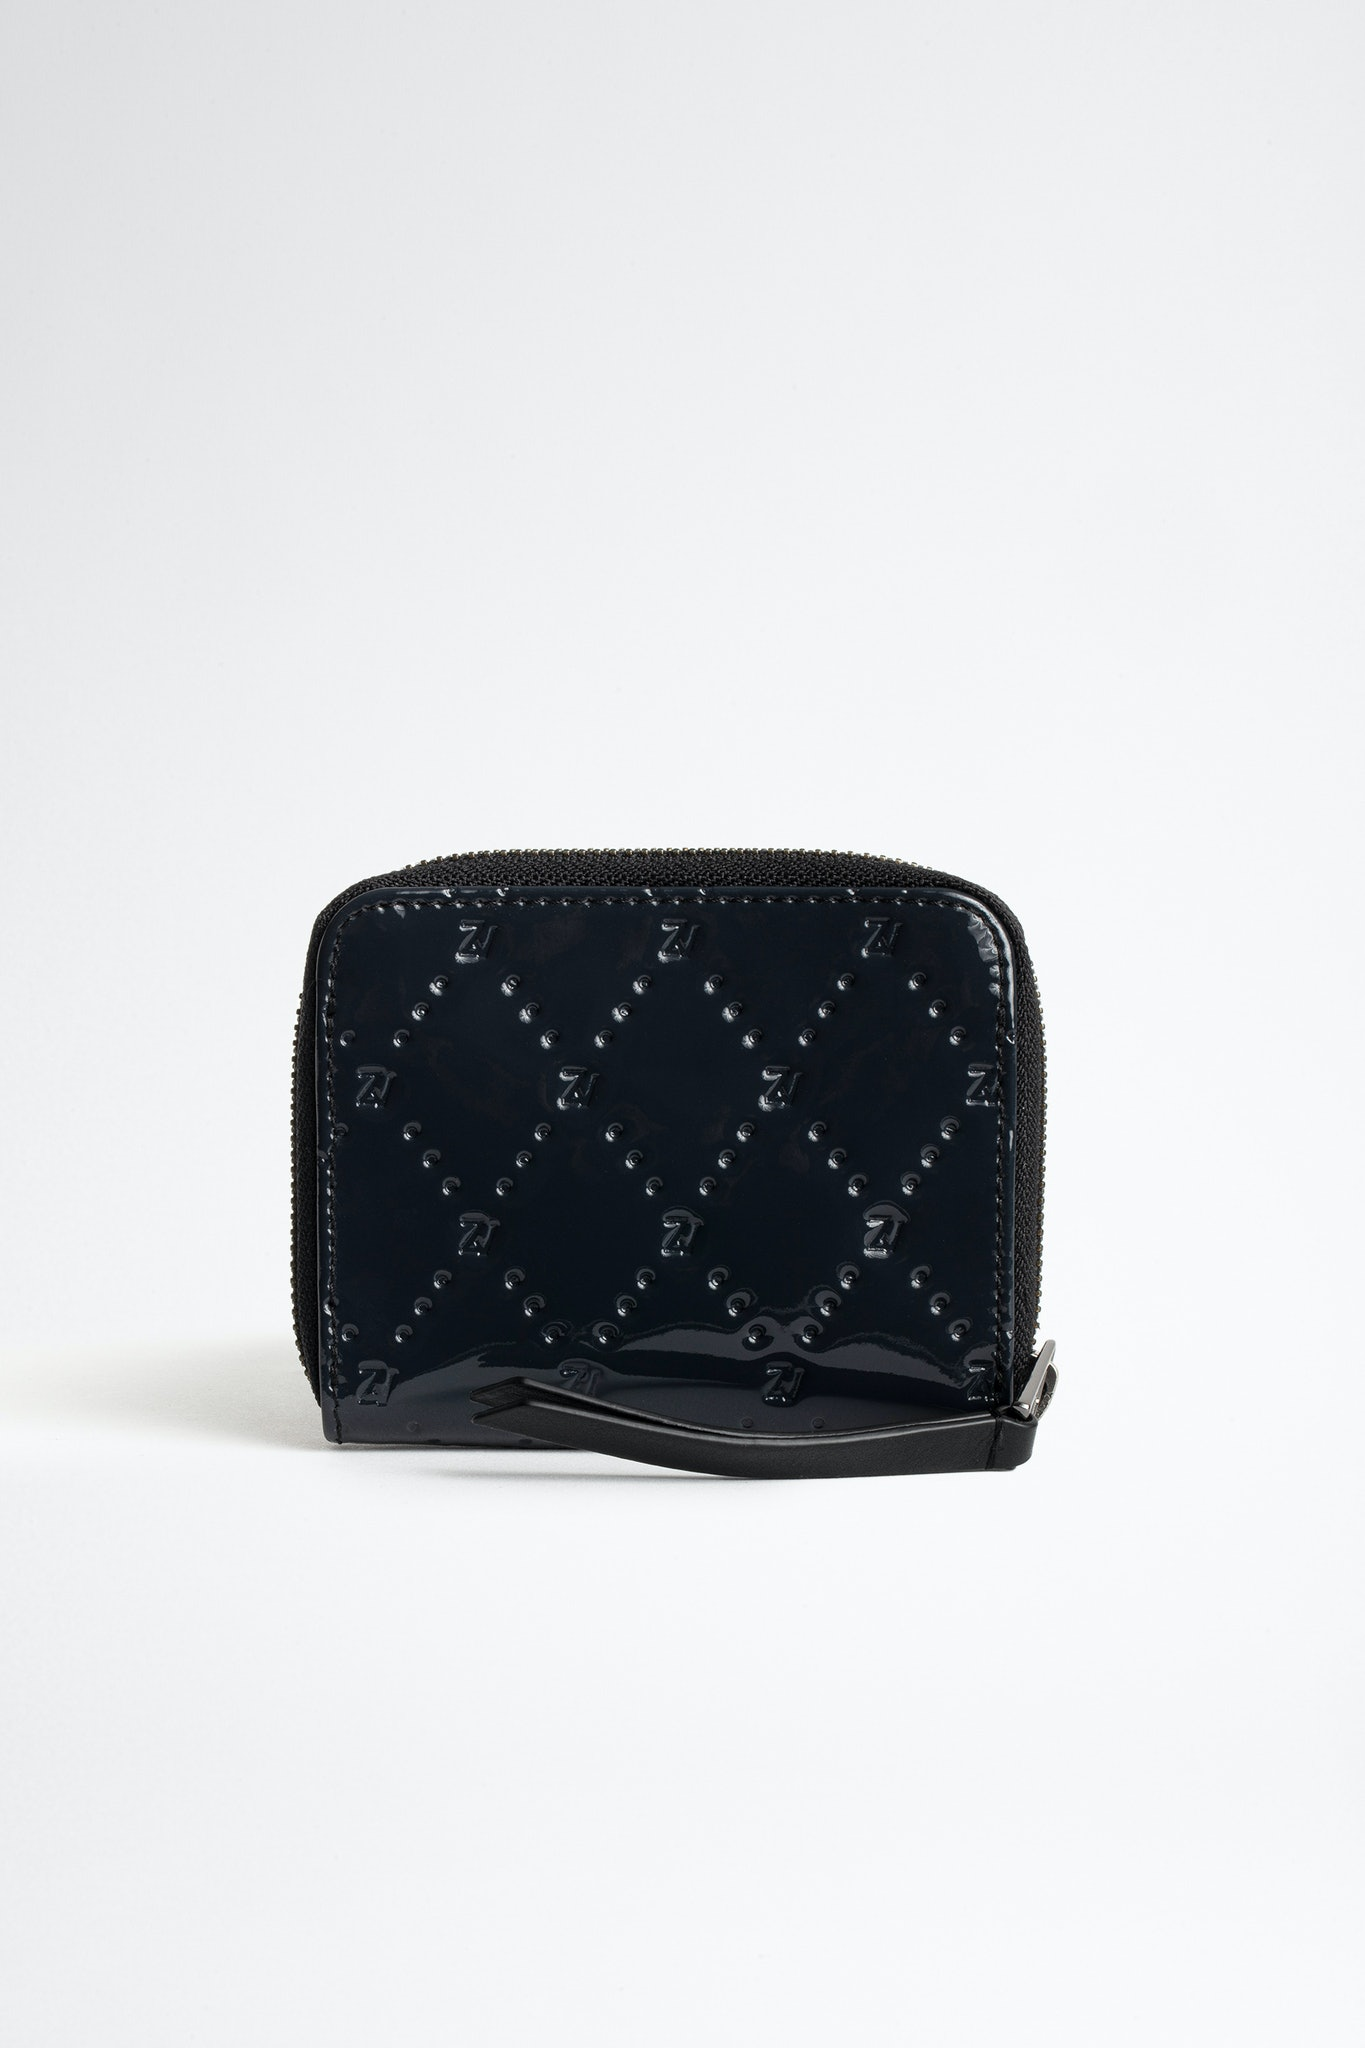 Mini ZV Embossed Patent Coin Purse